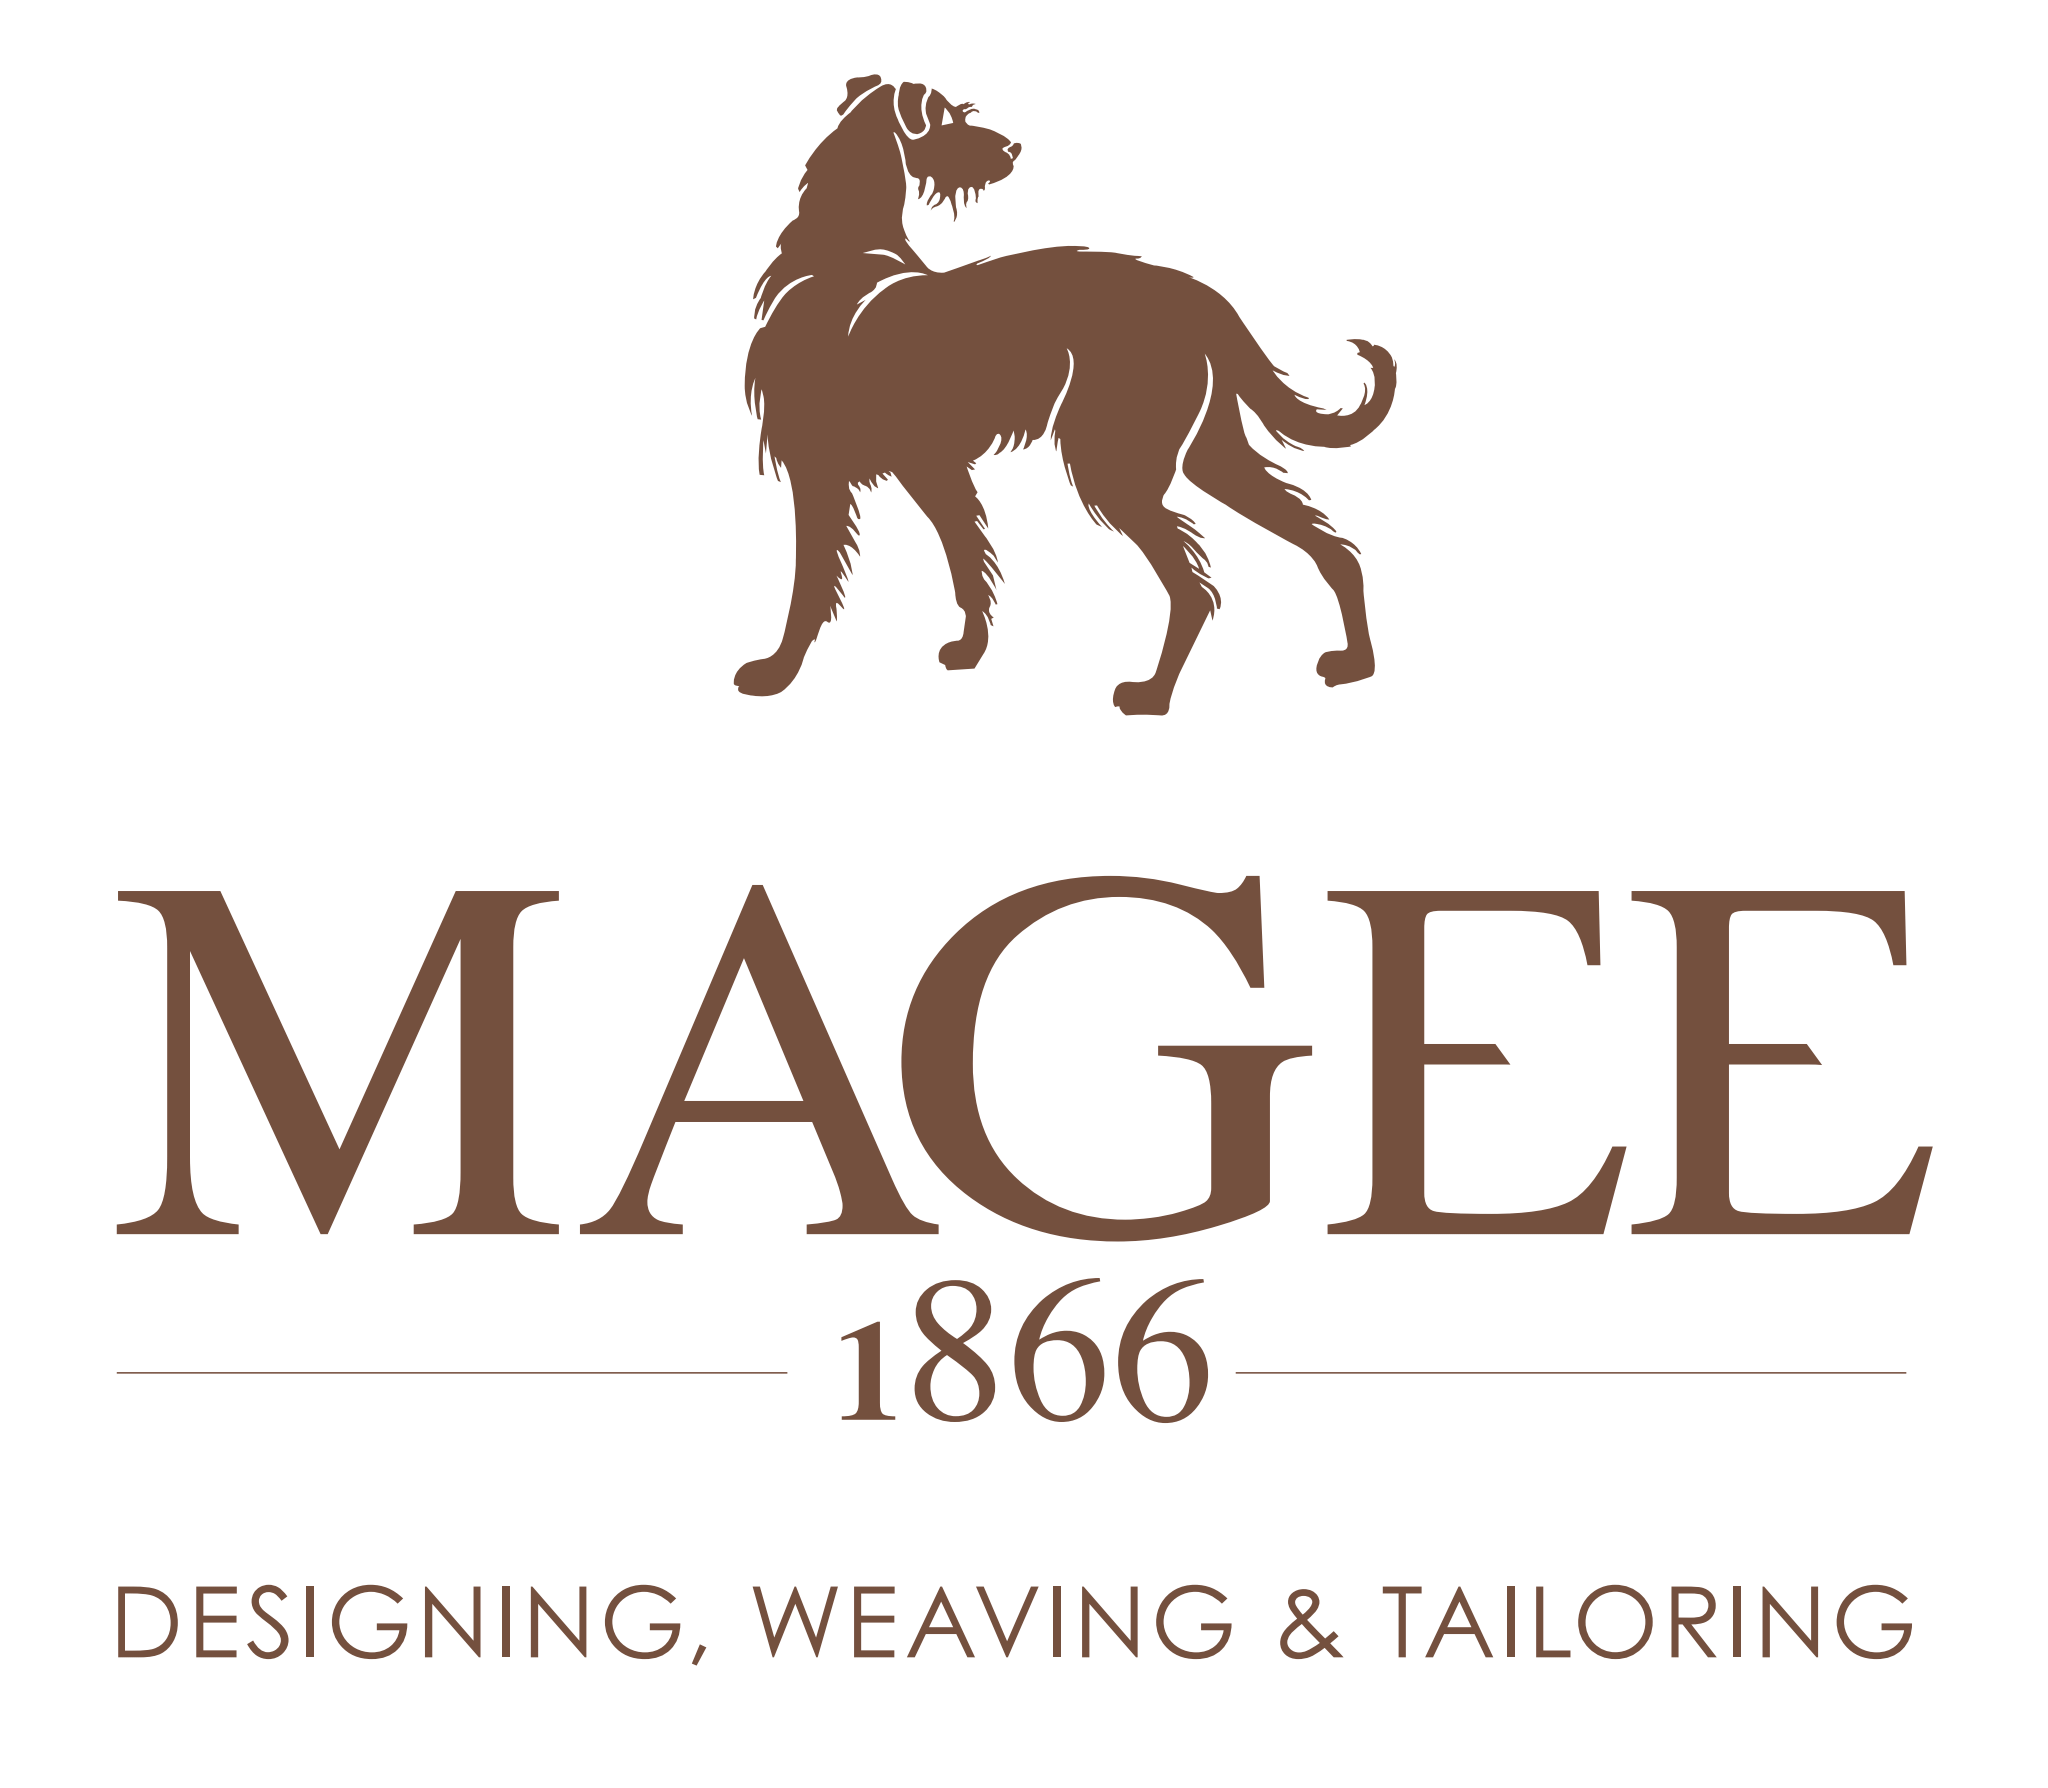 Magee 1886